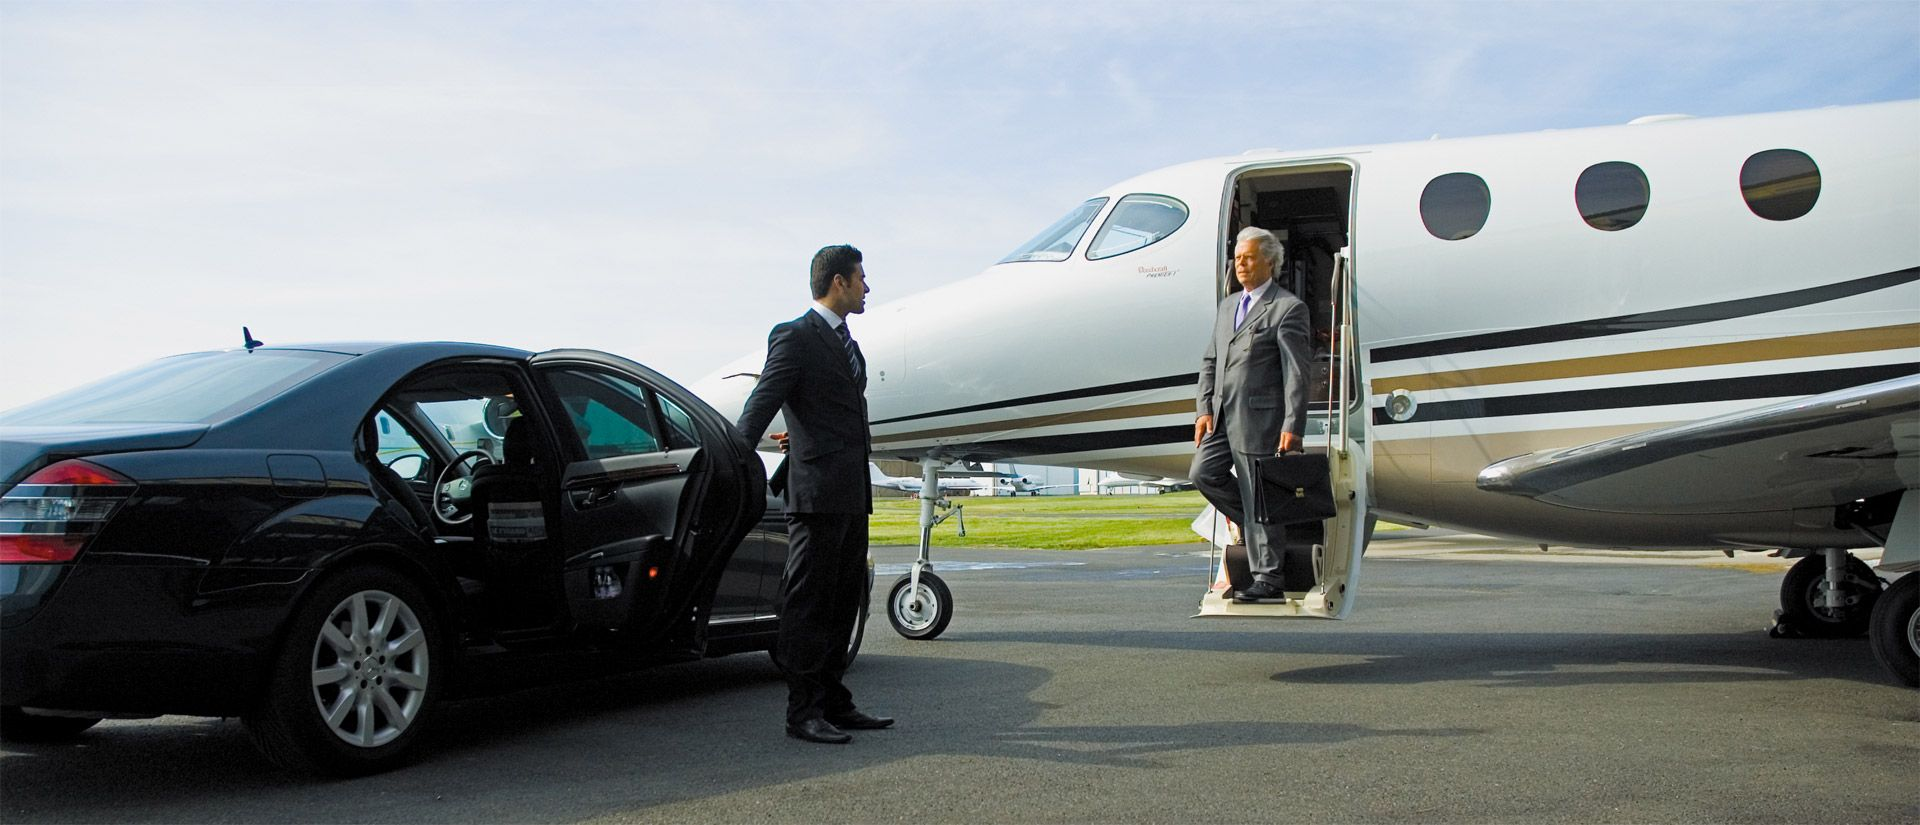 Luxury Transfers In Croatia From Zagreb To Dubrovnik Airport Limo Service Transportation Services Airport Limo